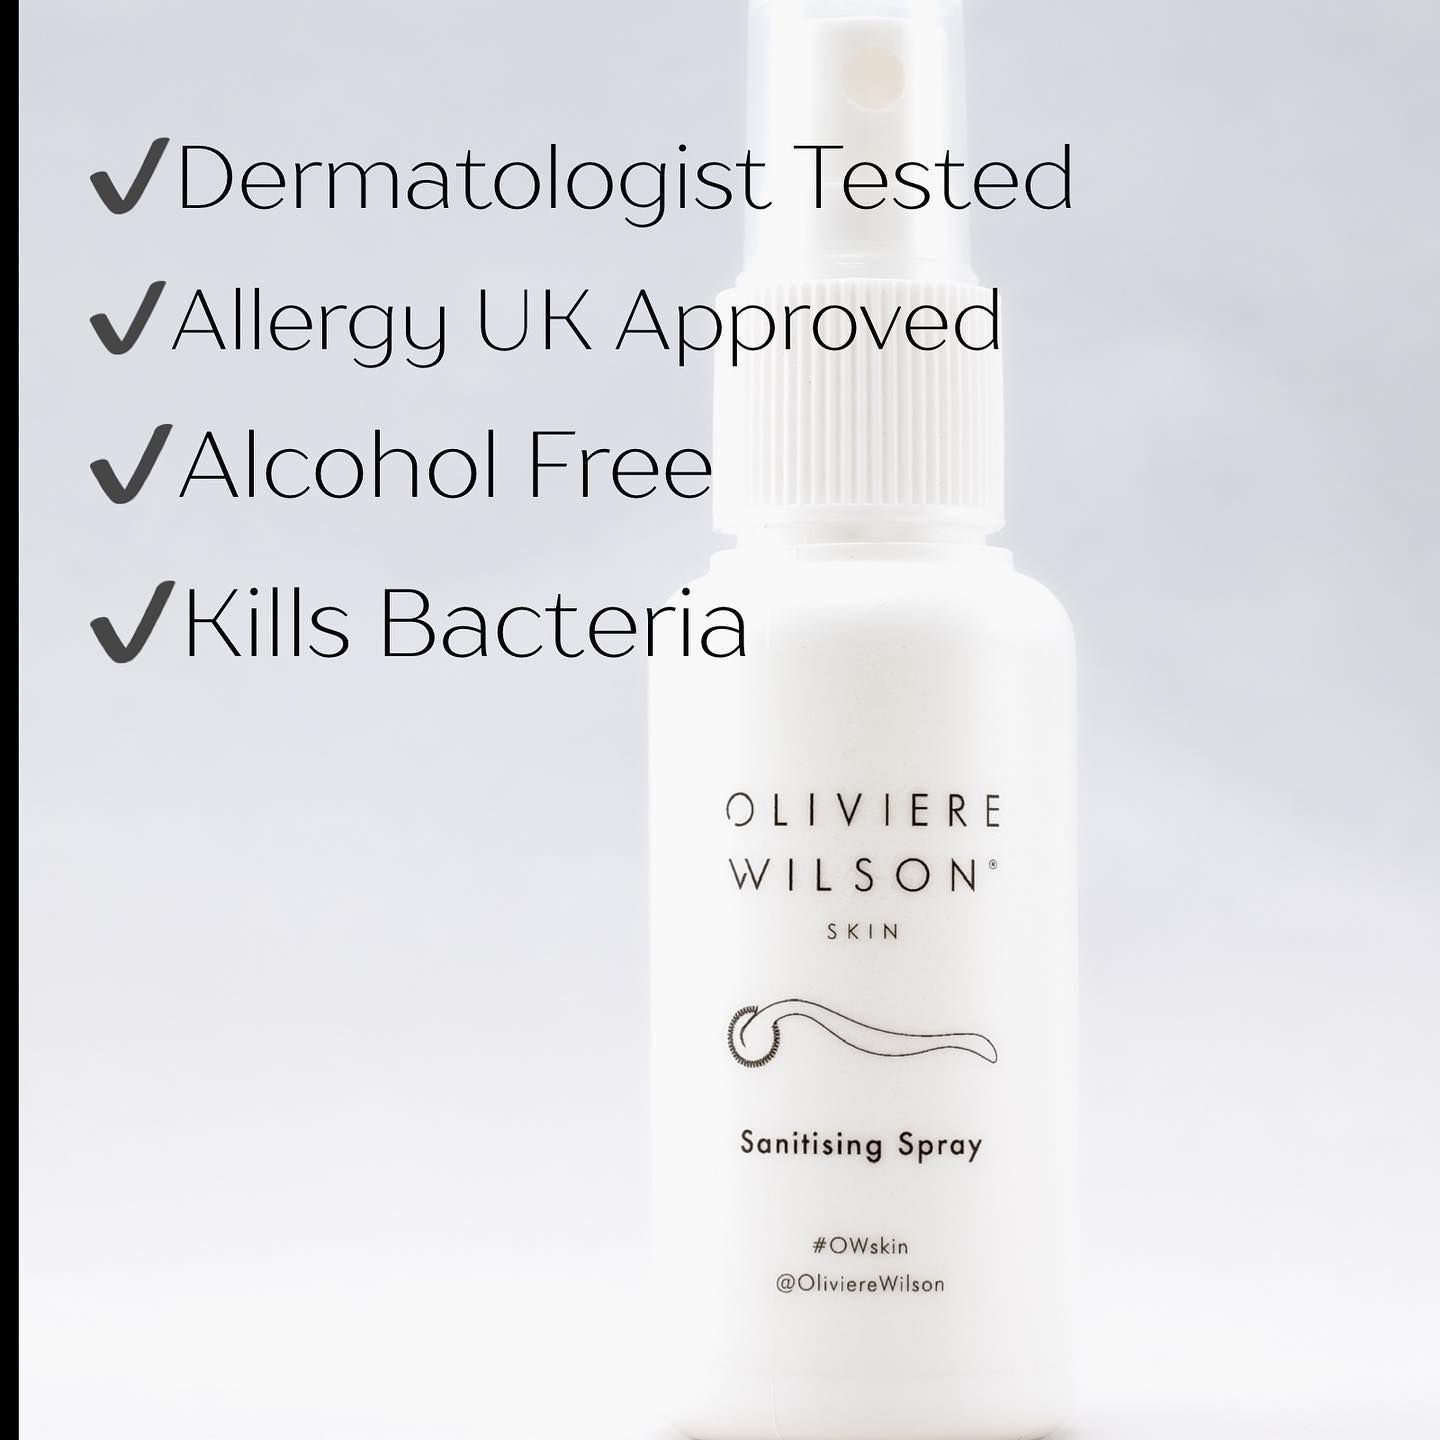 How to clean your Microneedling device? Meet our sanitising spray. So easy to use with no mess. Spray directly on to your roller then place the device in the protective casing. Leave to dry. Comes with all Microneedling purchases ✨ . . #owskin #olivierewilson #sanitisingspray #sanitisingwater #keepitclean #microneedle #dermatologistrecommended #allergyukapproved